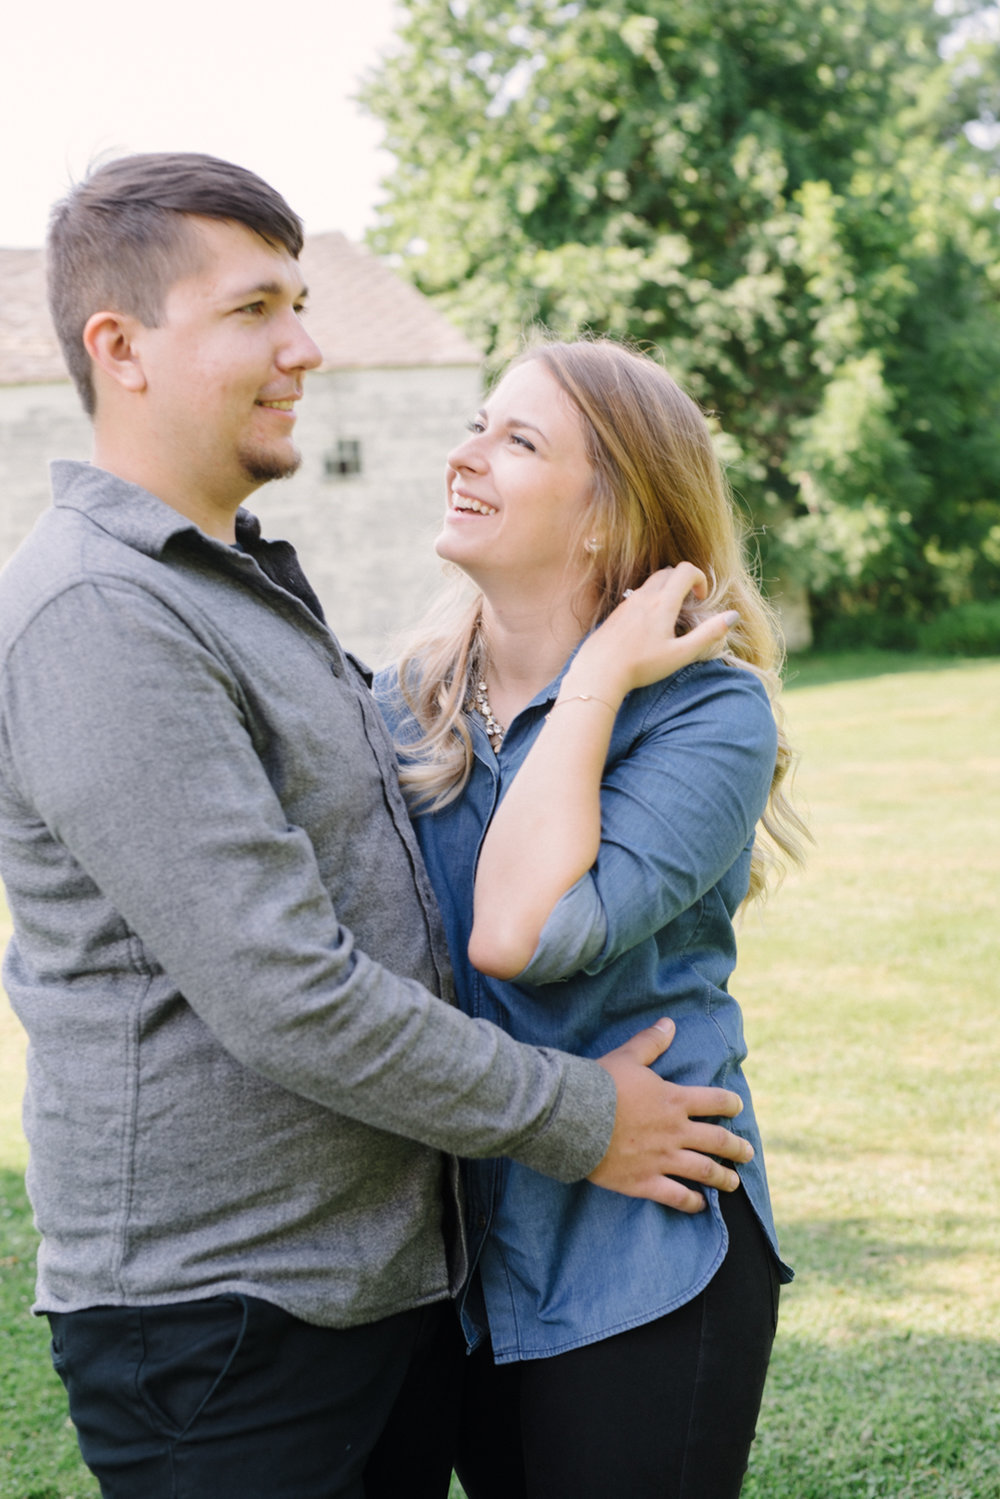 Updike Farmstead Engagement Session-Princeton New Jersey- Amanda+Pete- Olivia Christina Photo-61.jpg